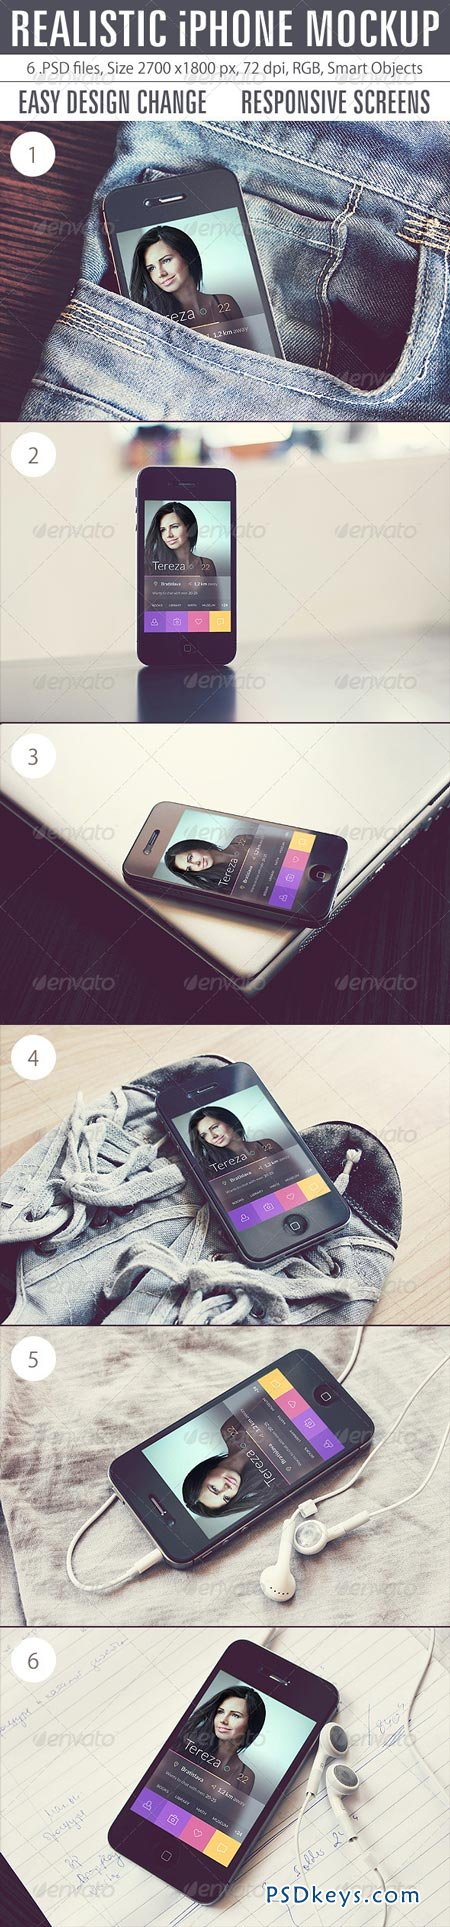 Realistic iPhone Mockup 8368904